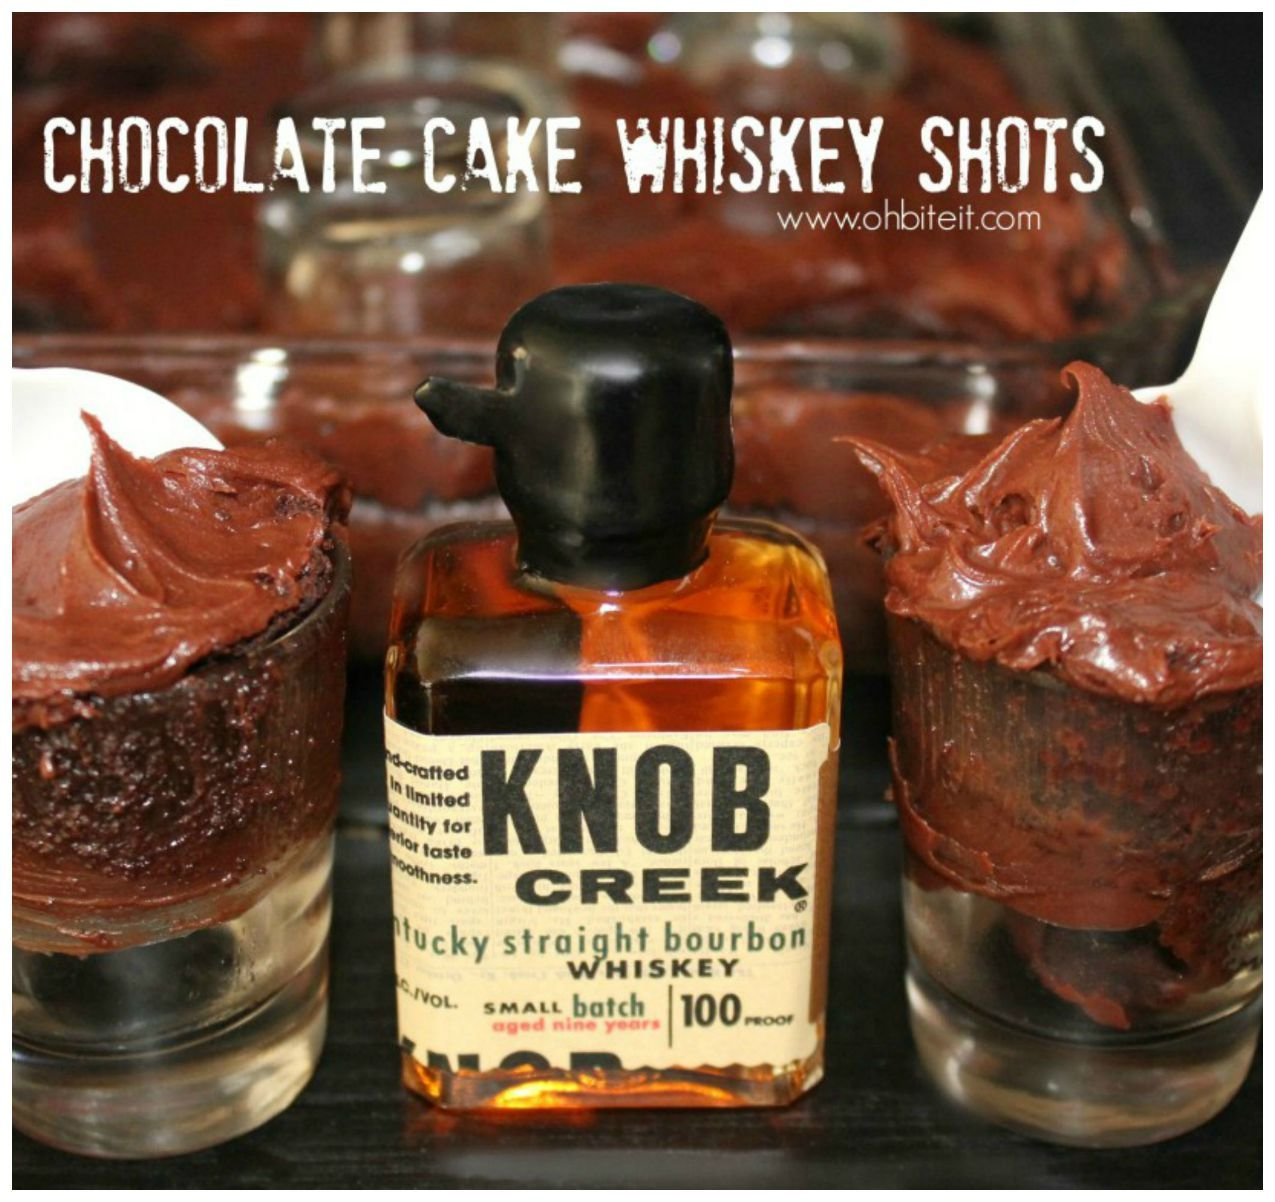 Chocolate Cake Whiskey SHOTS cocktail recipes Pinterest